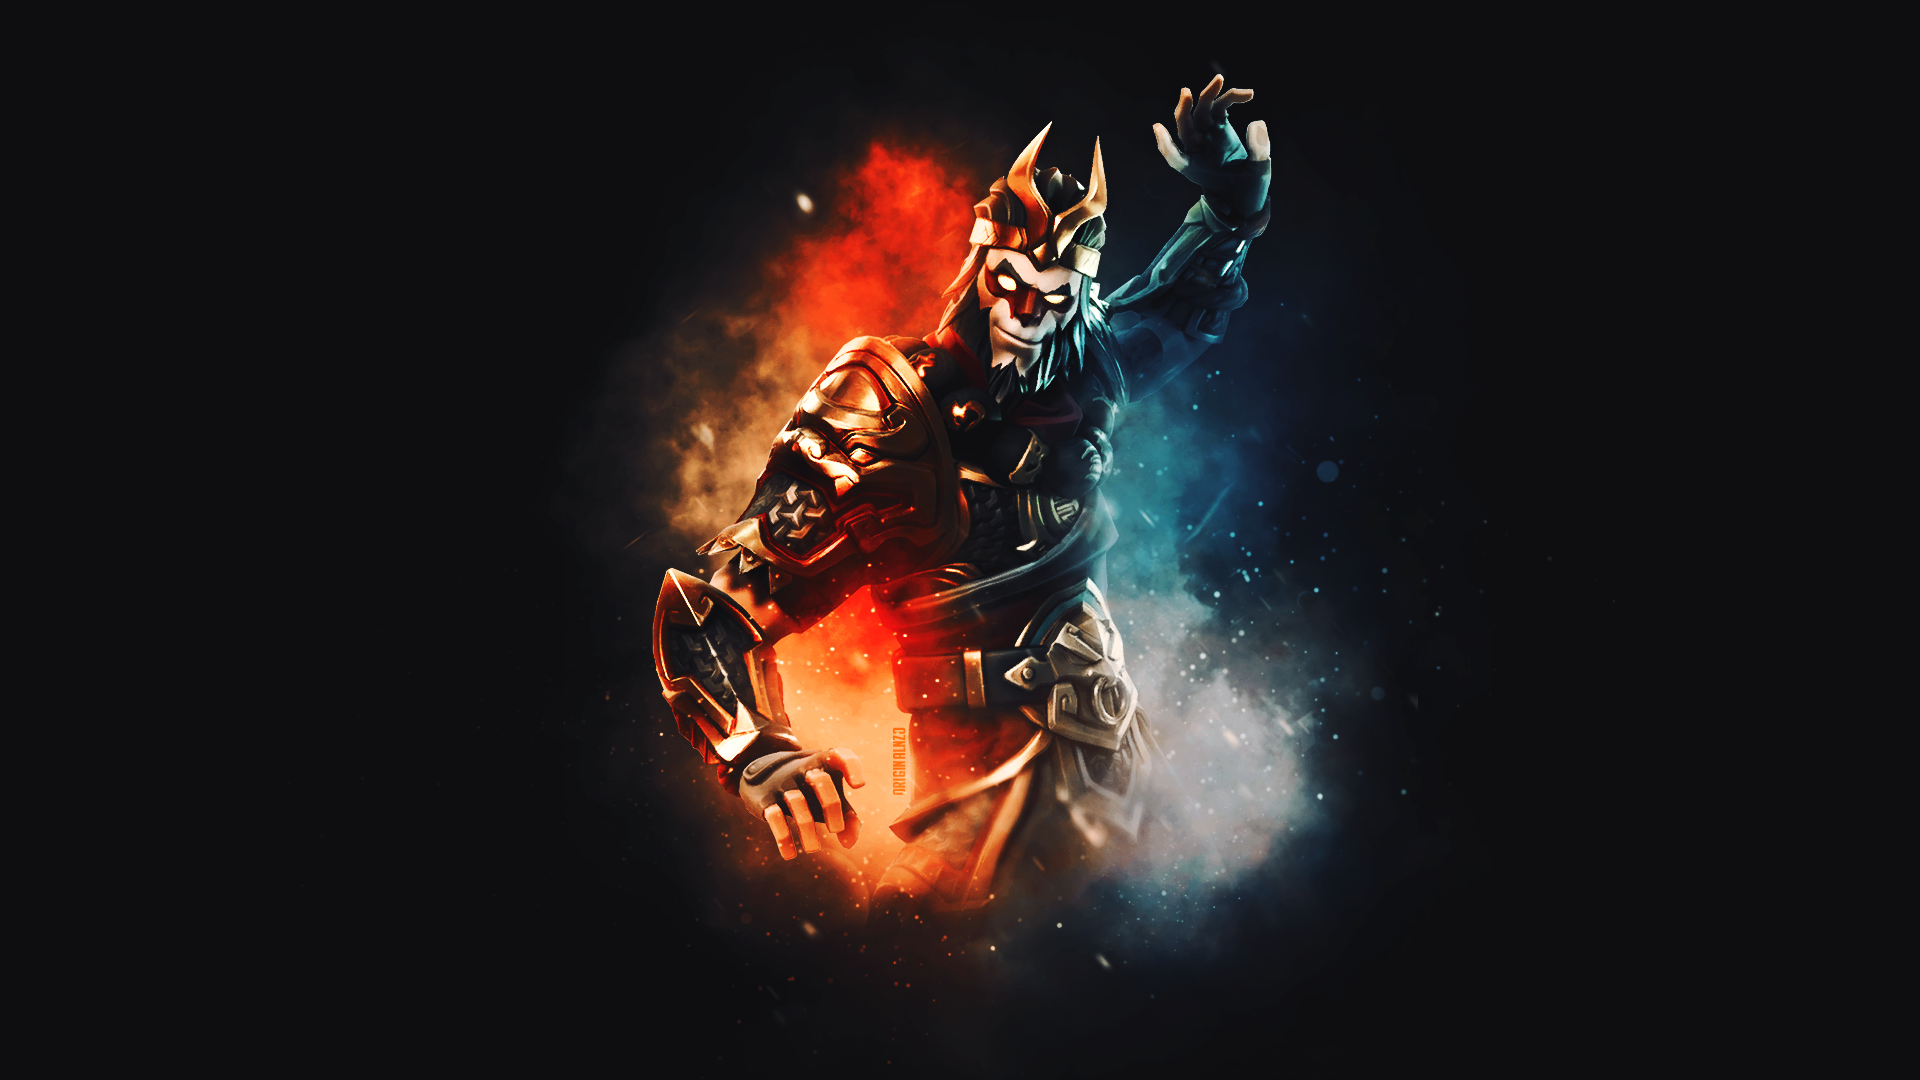 Wukong Wallpaper EDIT FortNiteBR 1920x1080